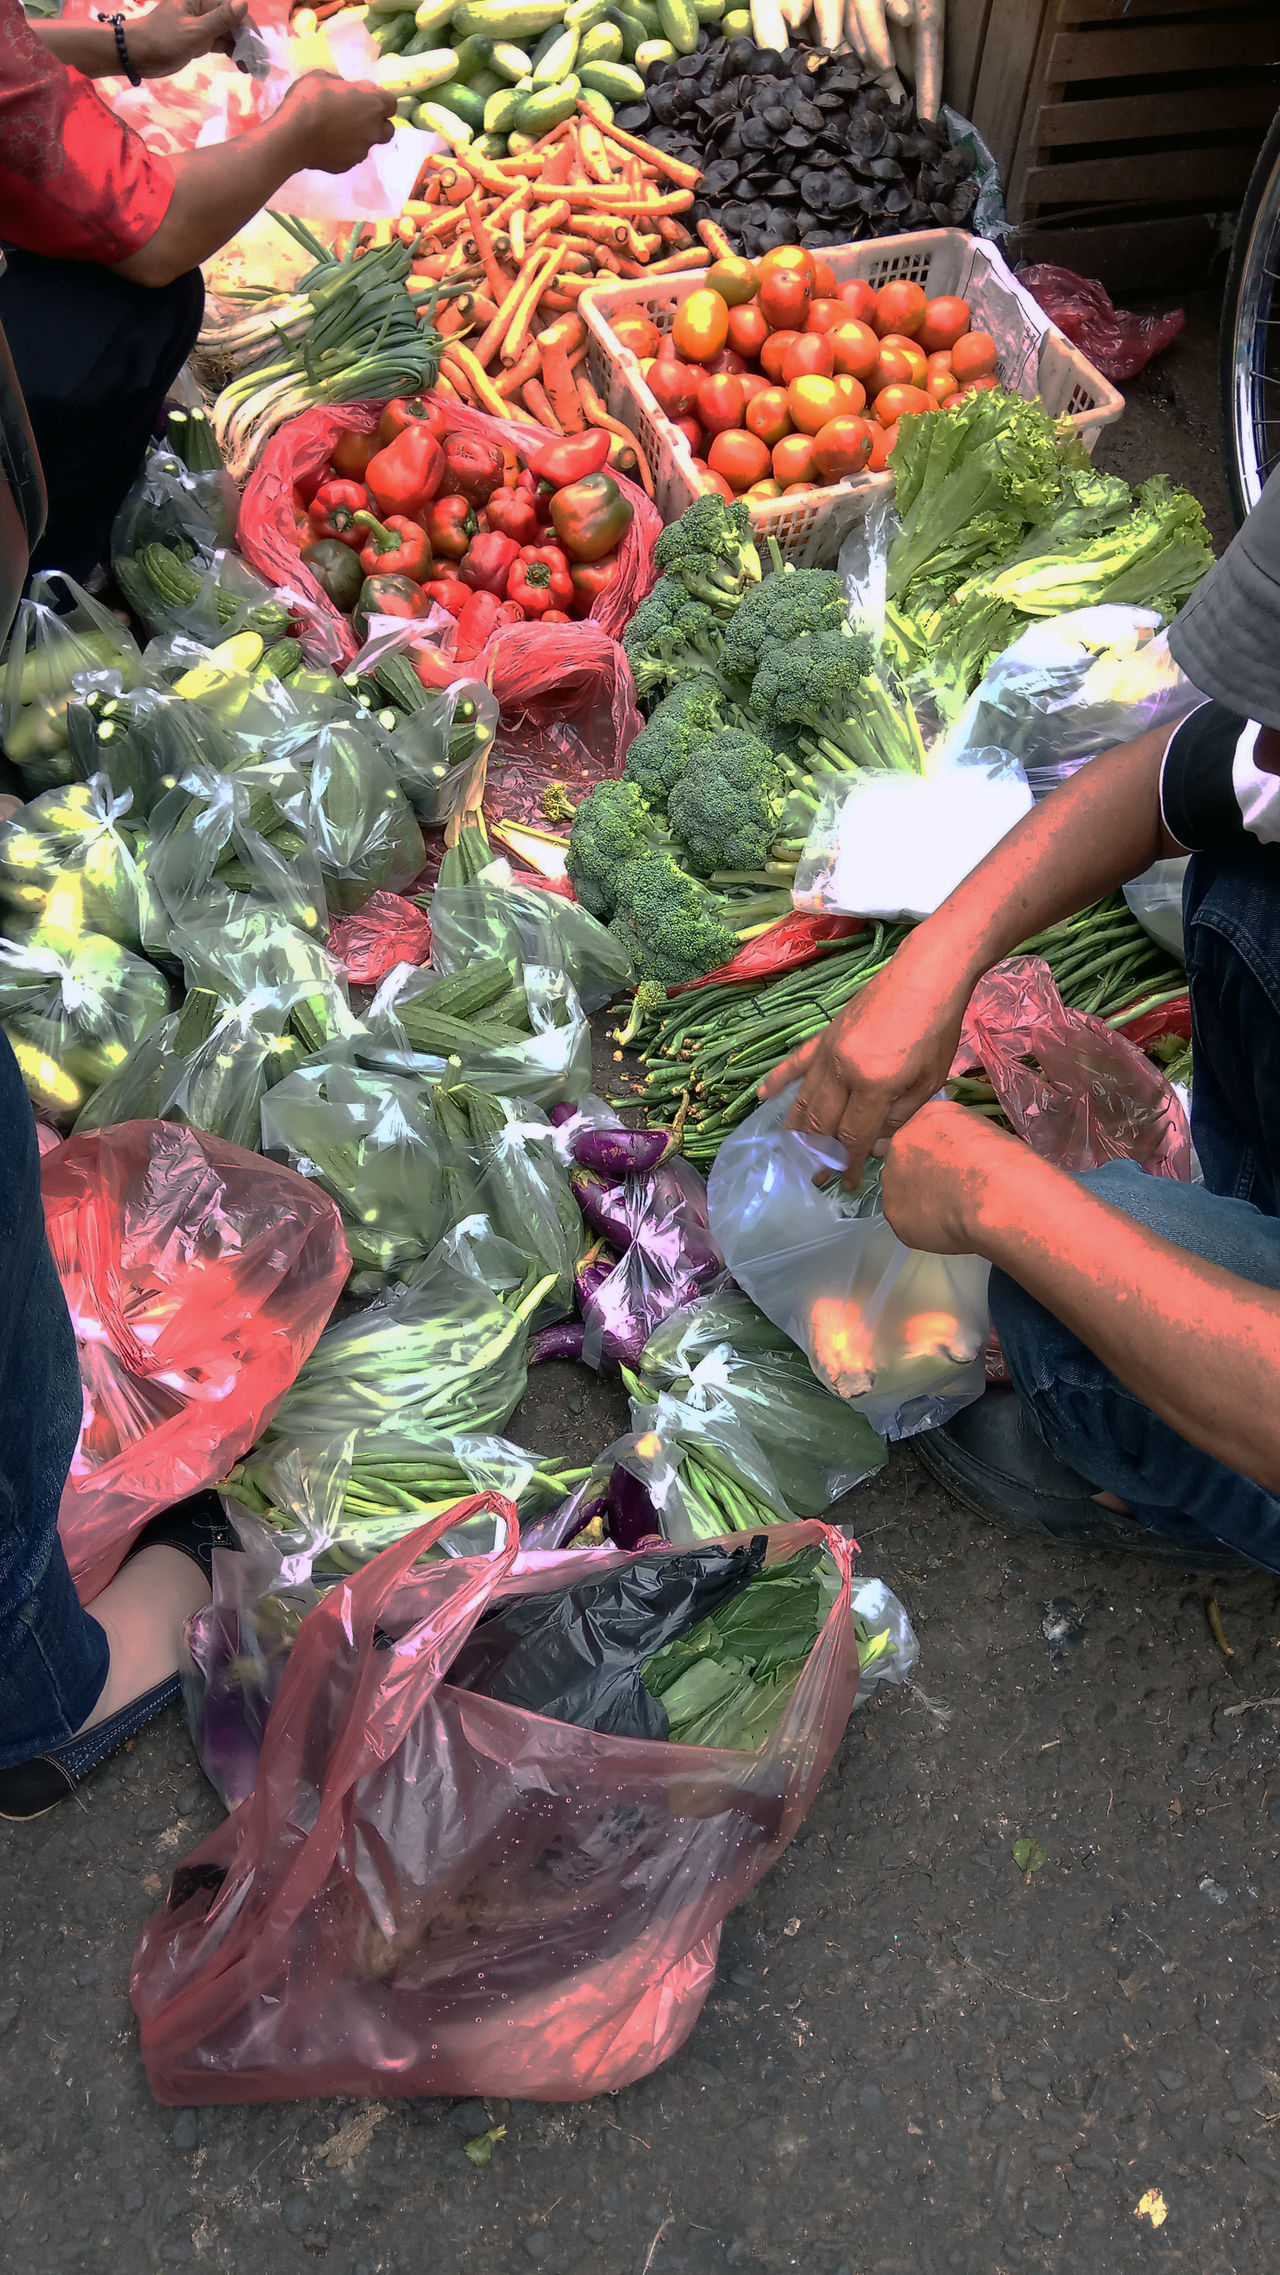 Transactions in traditional markets Choice Day Food Food And Drink For Sale Freshness Healthy Eating Holding Human Body Part Human Hand Lifestyles Market Men Occupation Outdoors People Real People Retail  Streetphotography Variation Vegetable Women Working